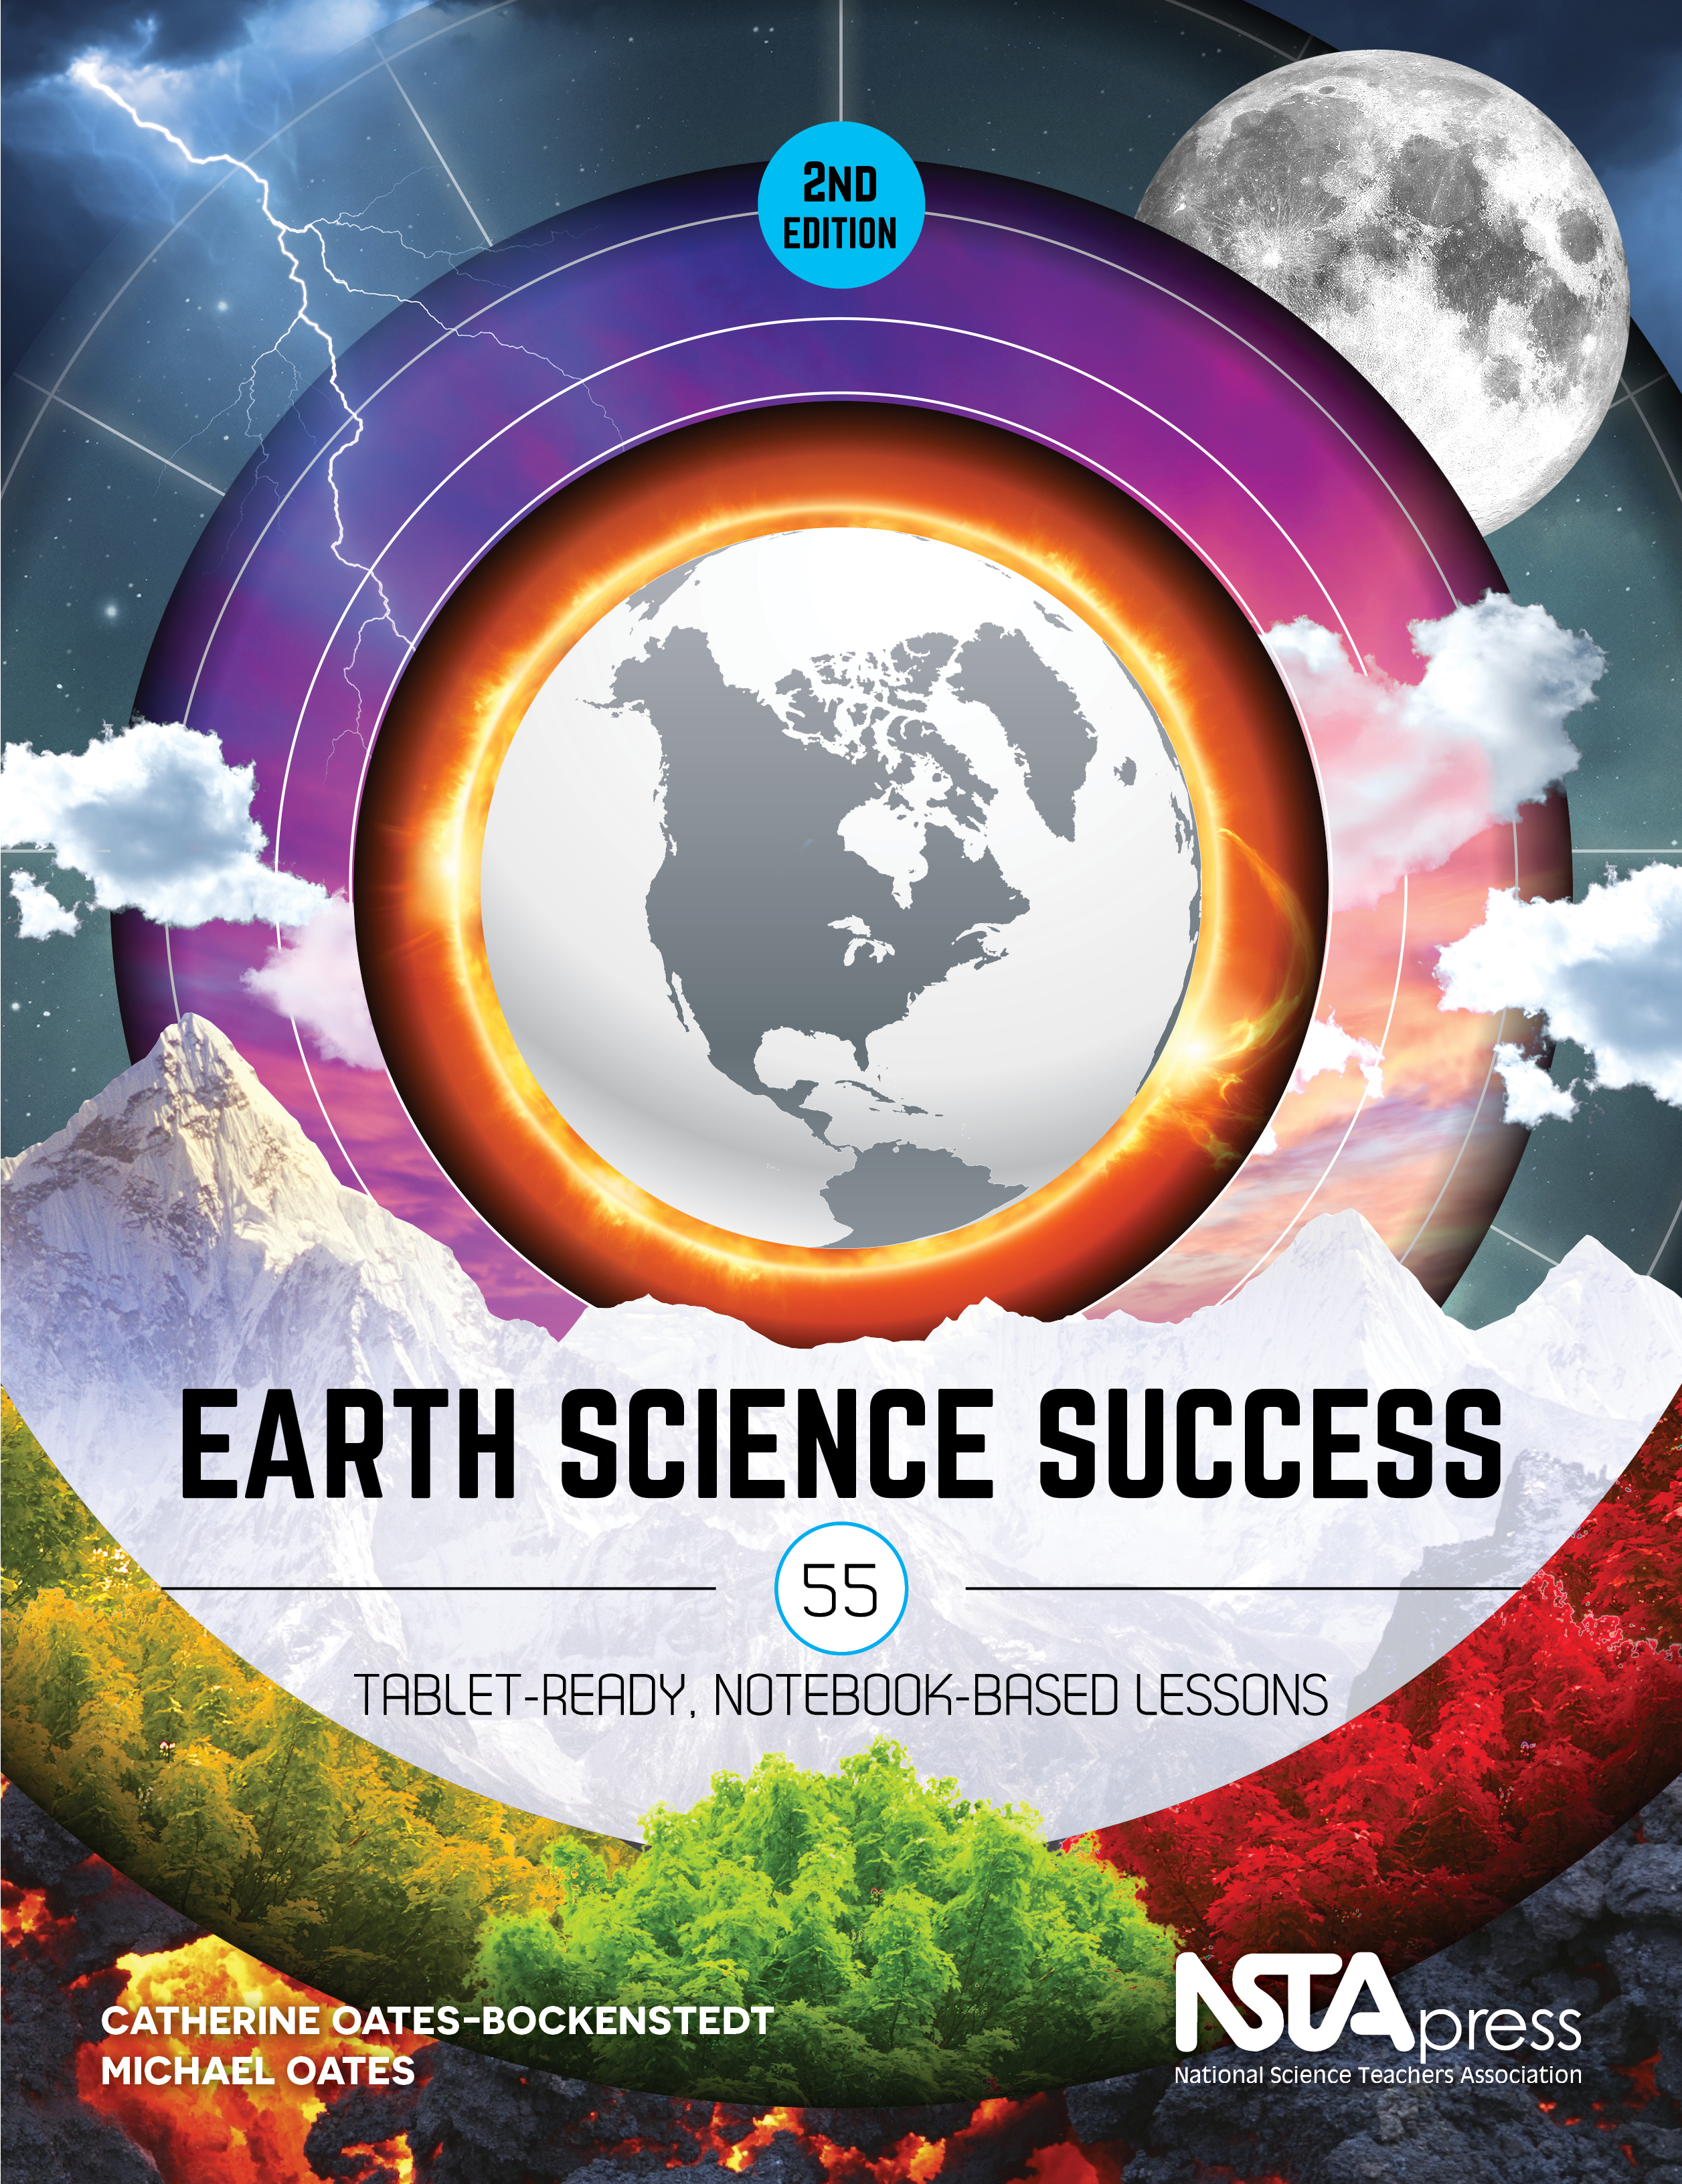 Science Book Cover : Nsta press gives earth science teachers a survival guide